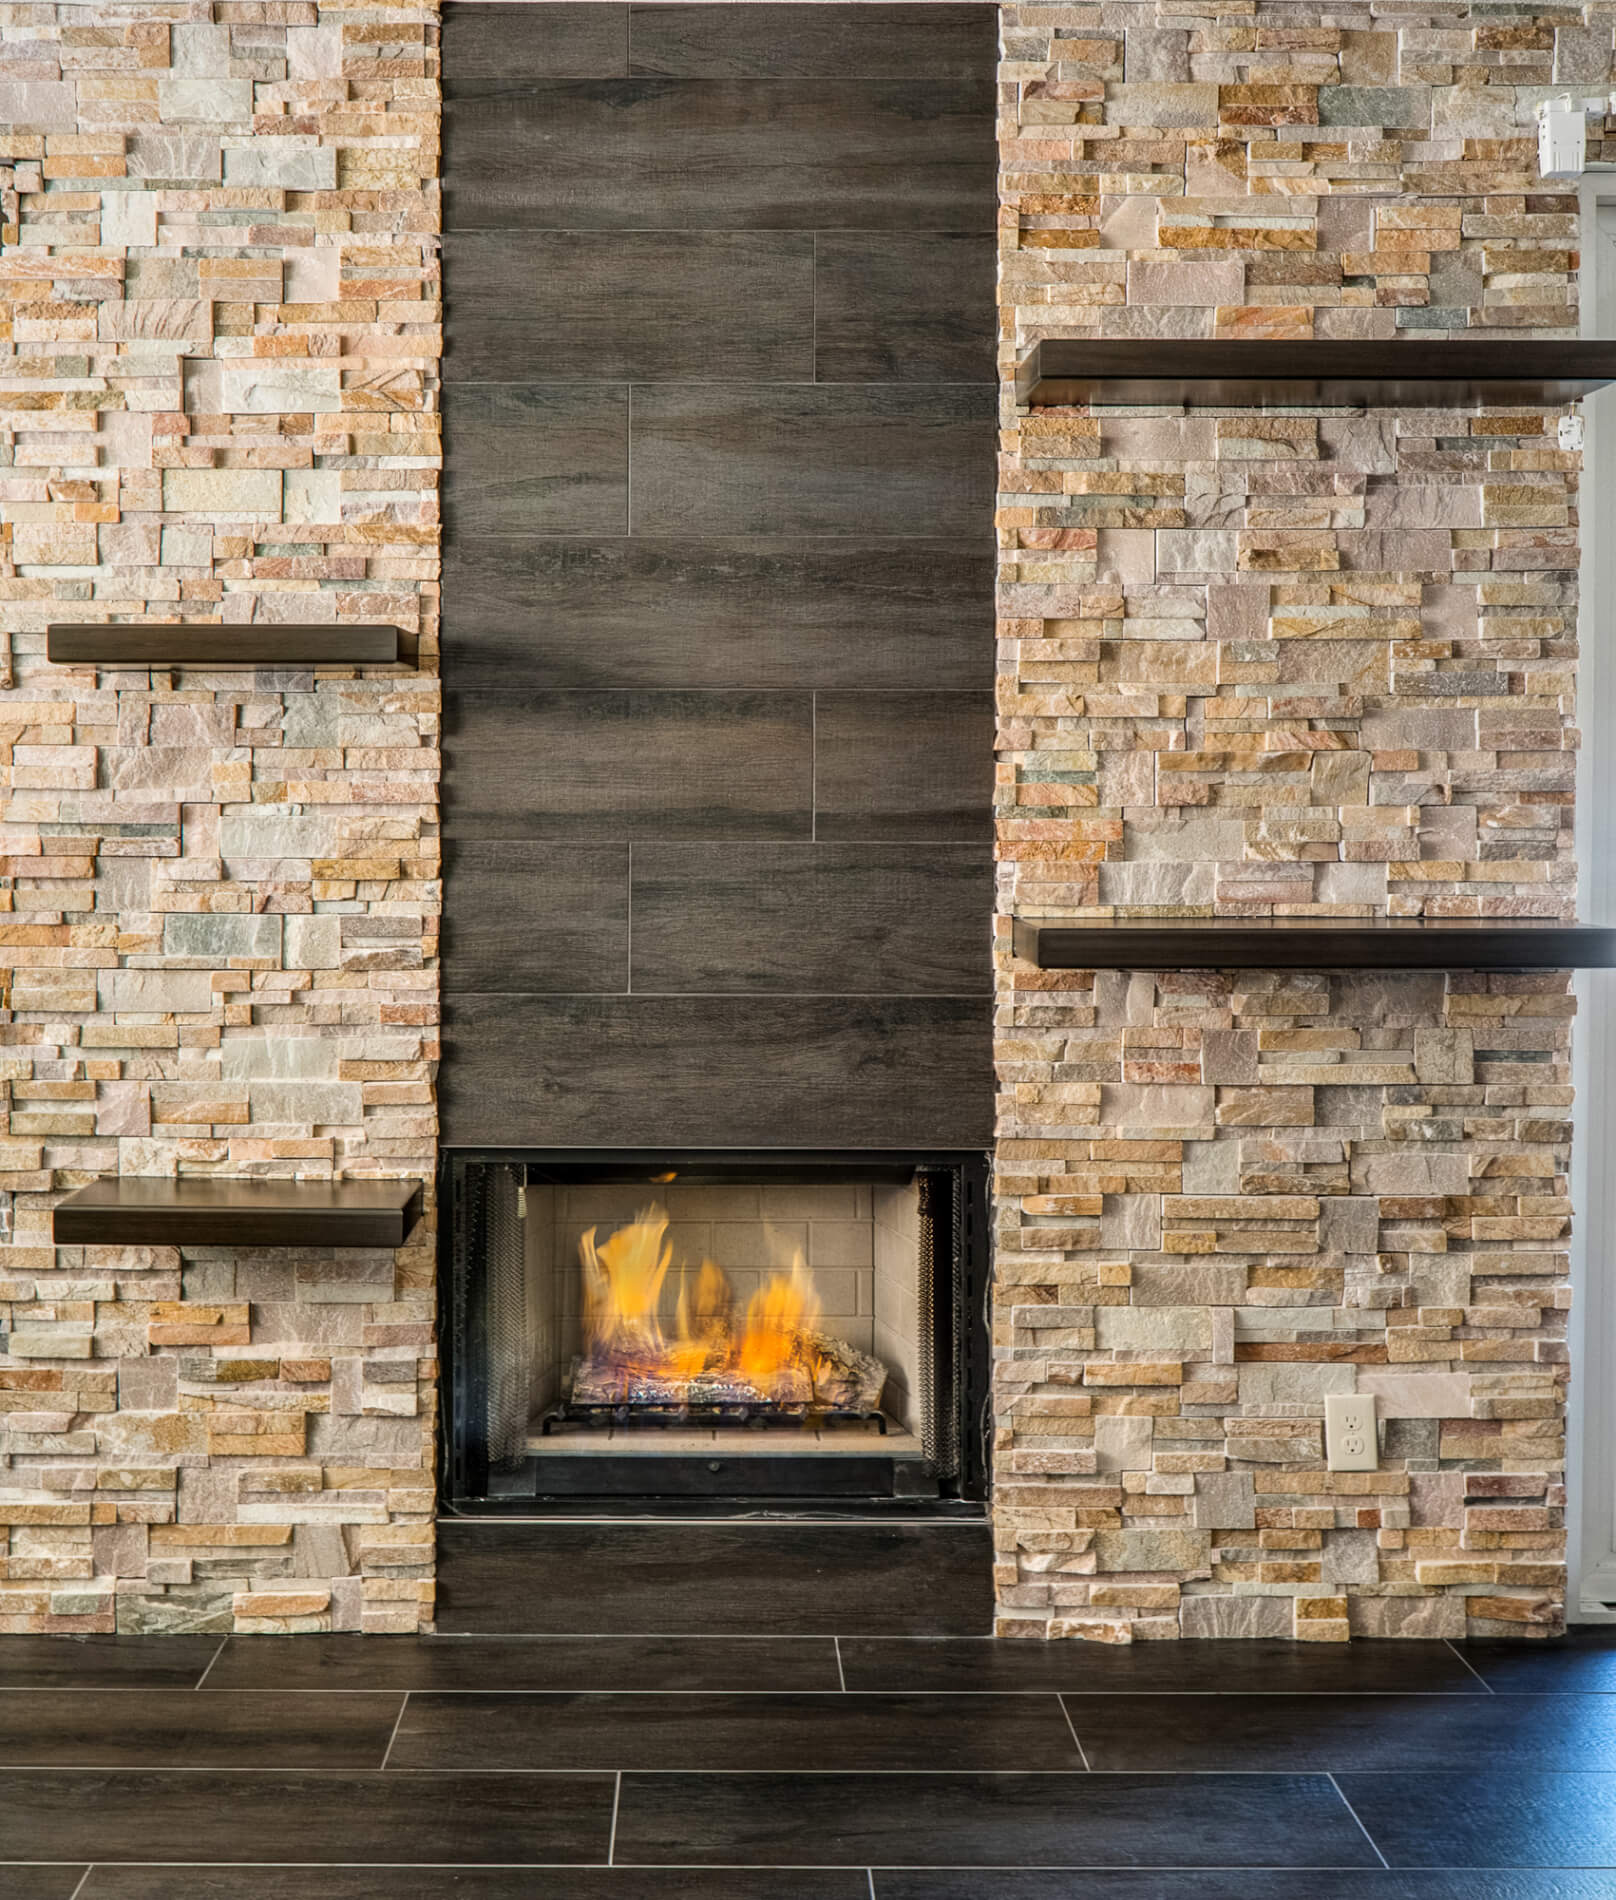 Stackstone Fireplace with Floating Shelves, Stack Stone Fire Place, Fireplace Refacing Orange County